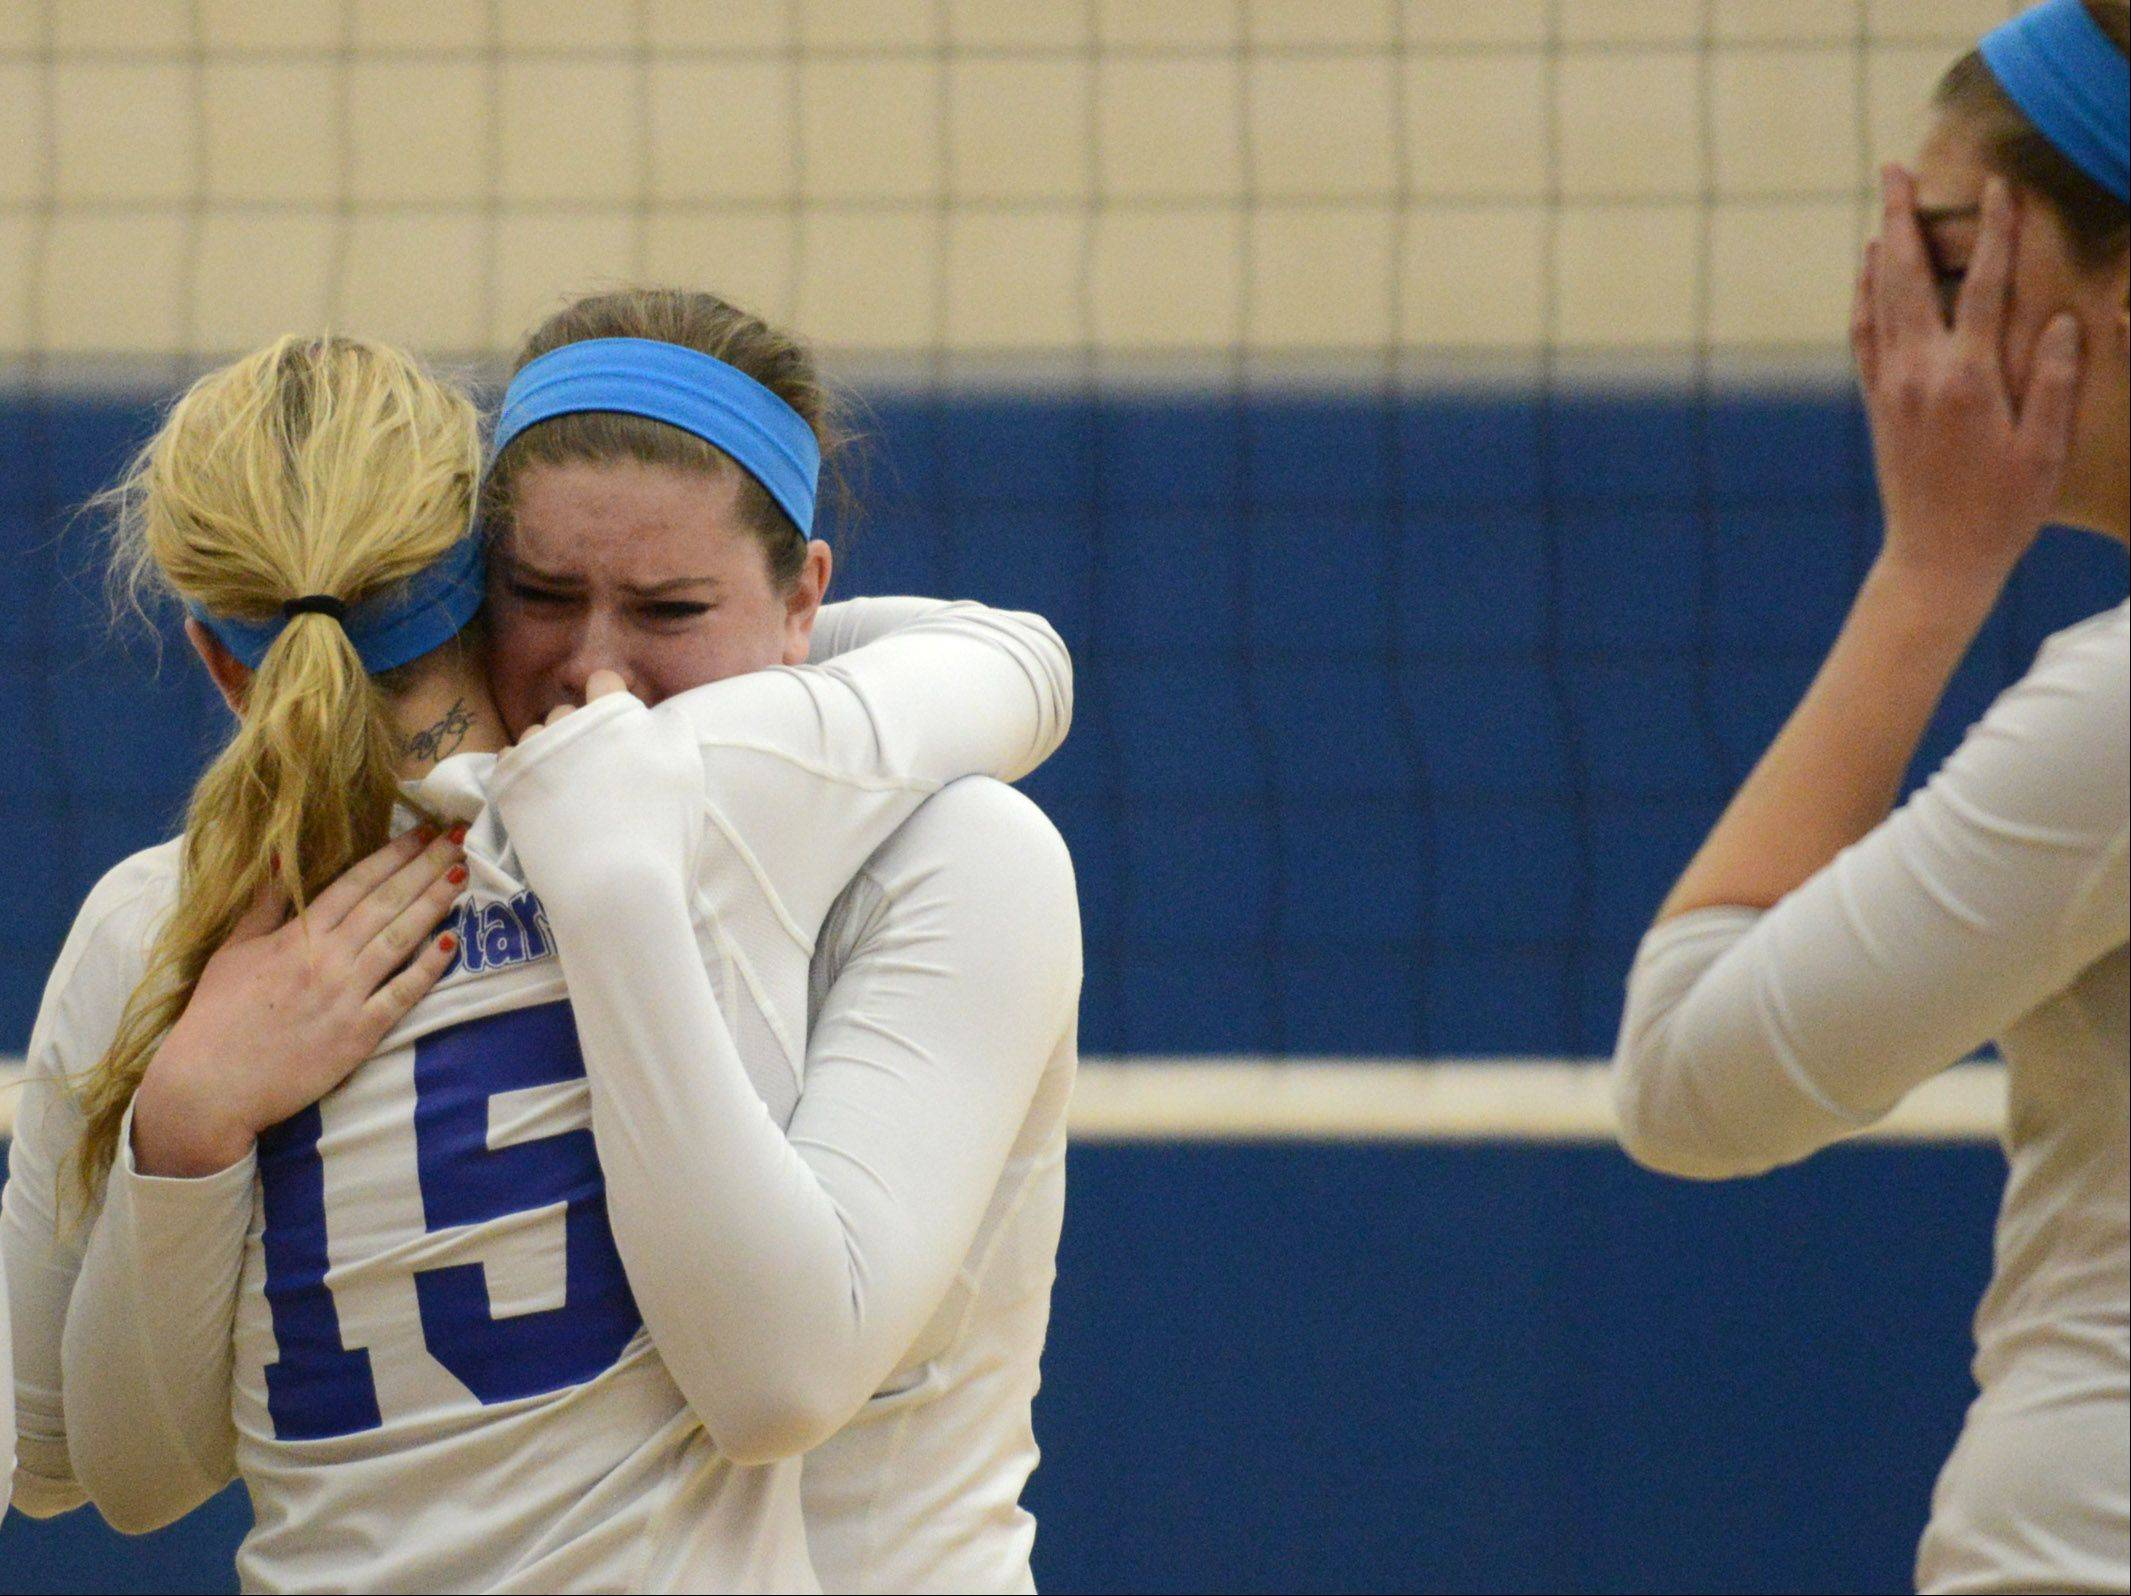 St. Charles North's Corrinne Sullivan, facing, hugs teammate Camille Kot after their loss to Geneva during Thursday's sectional final in Geneva.